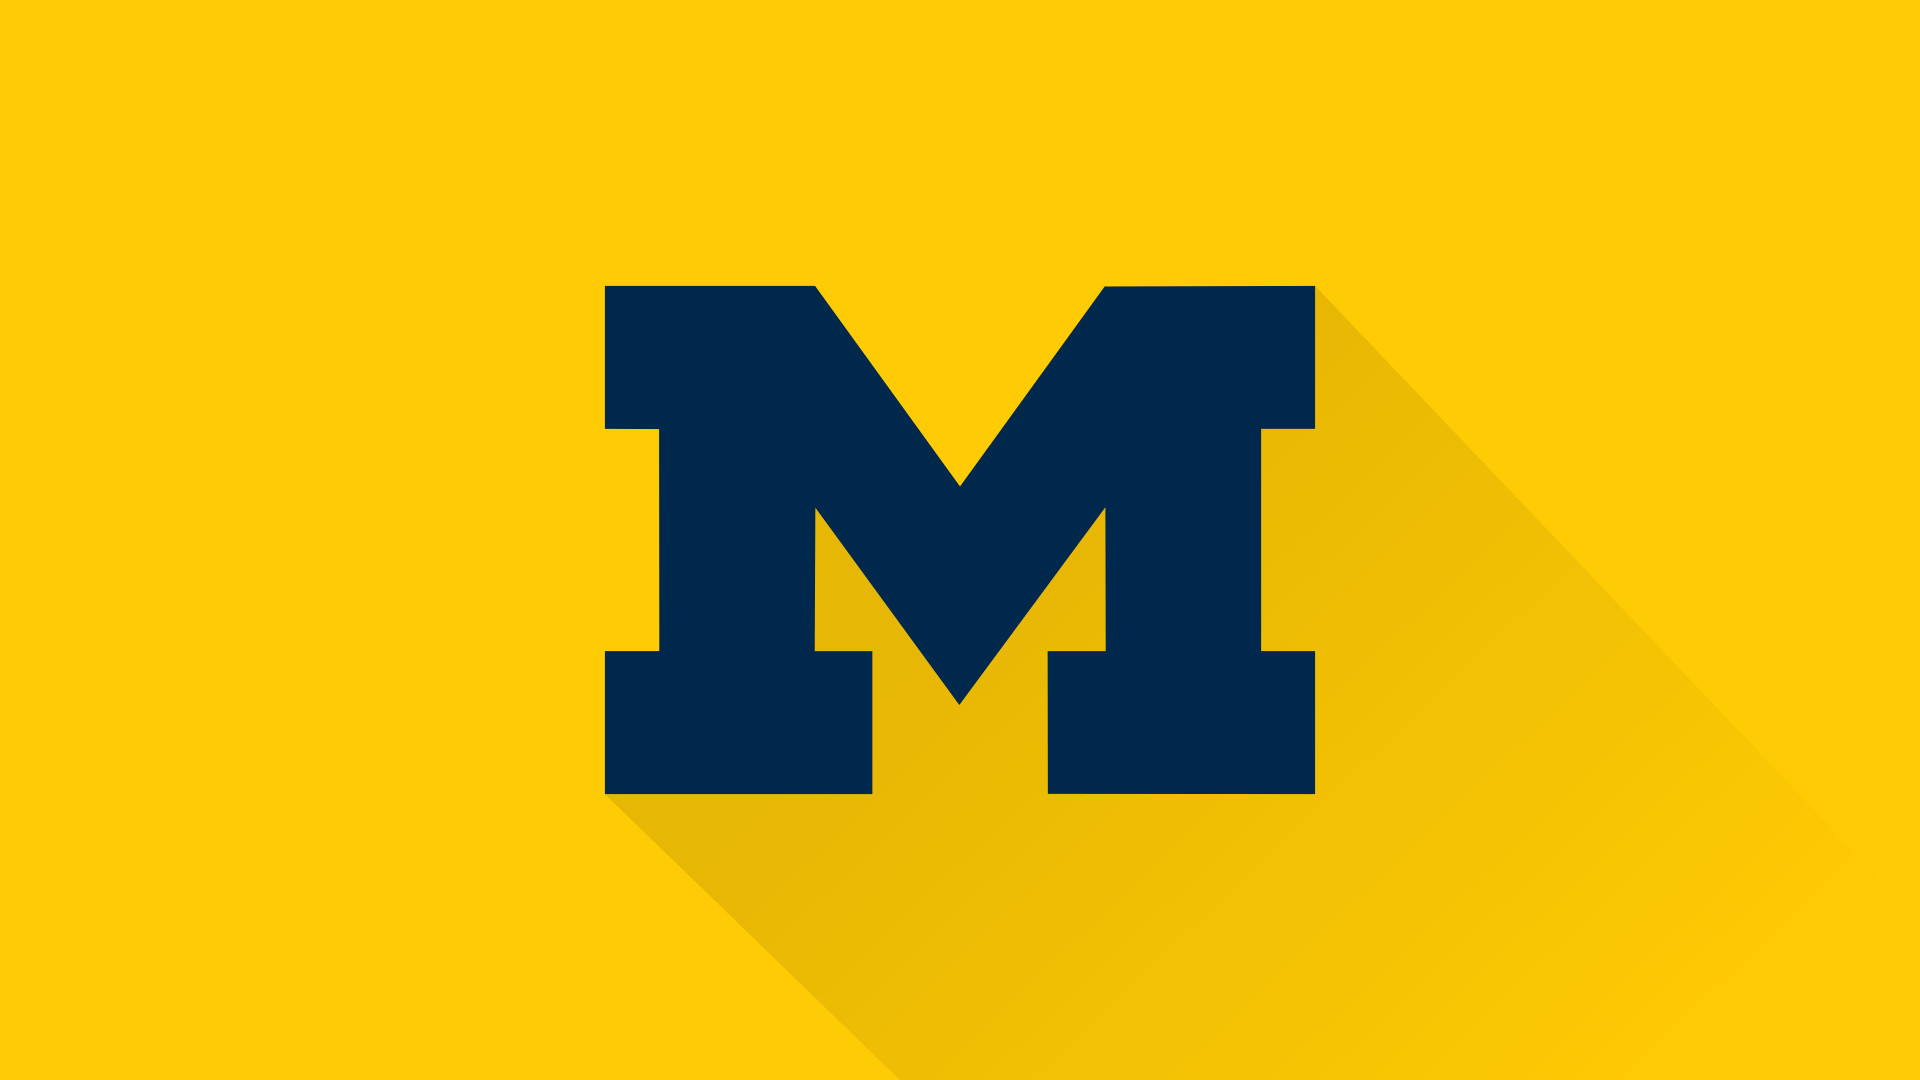 1920x1080 Michigan Wolverines Football Wallpaper Big Ten Football Online .